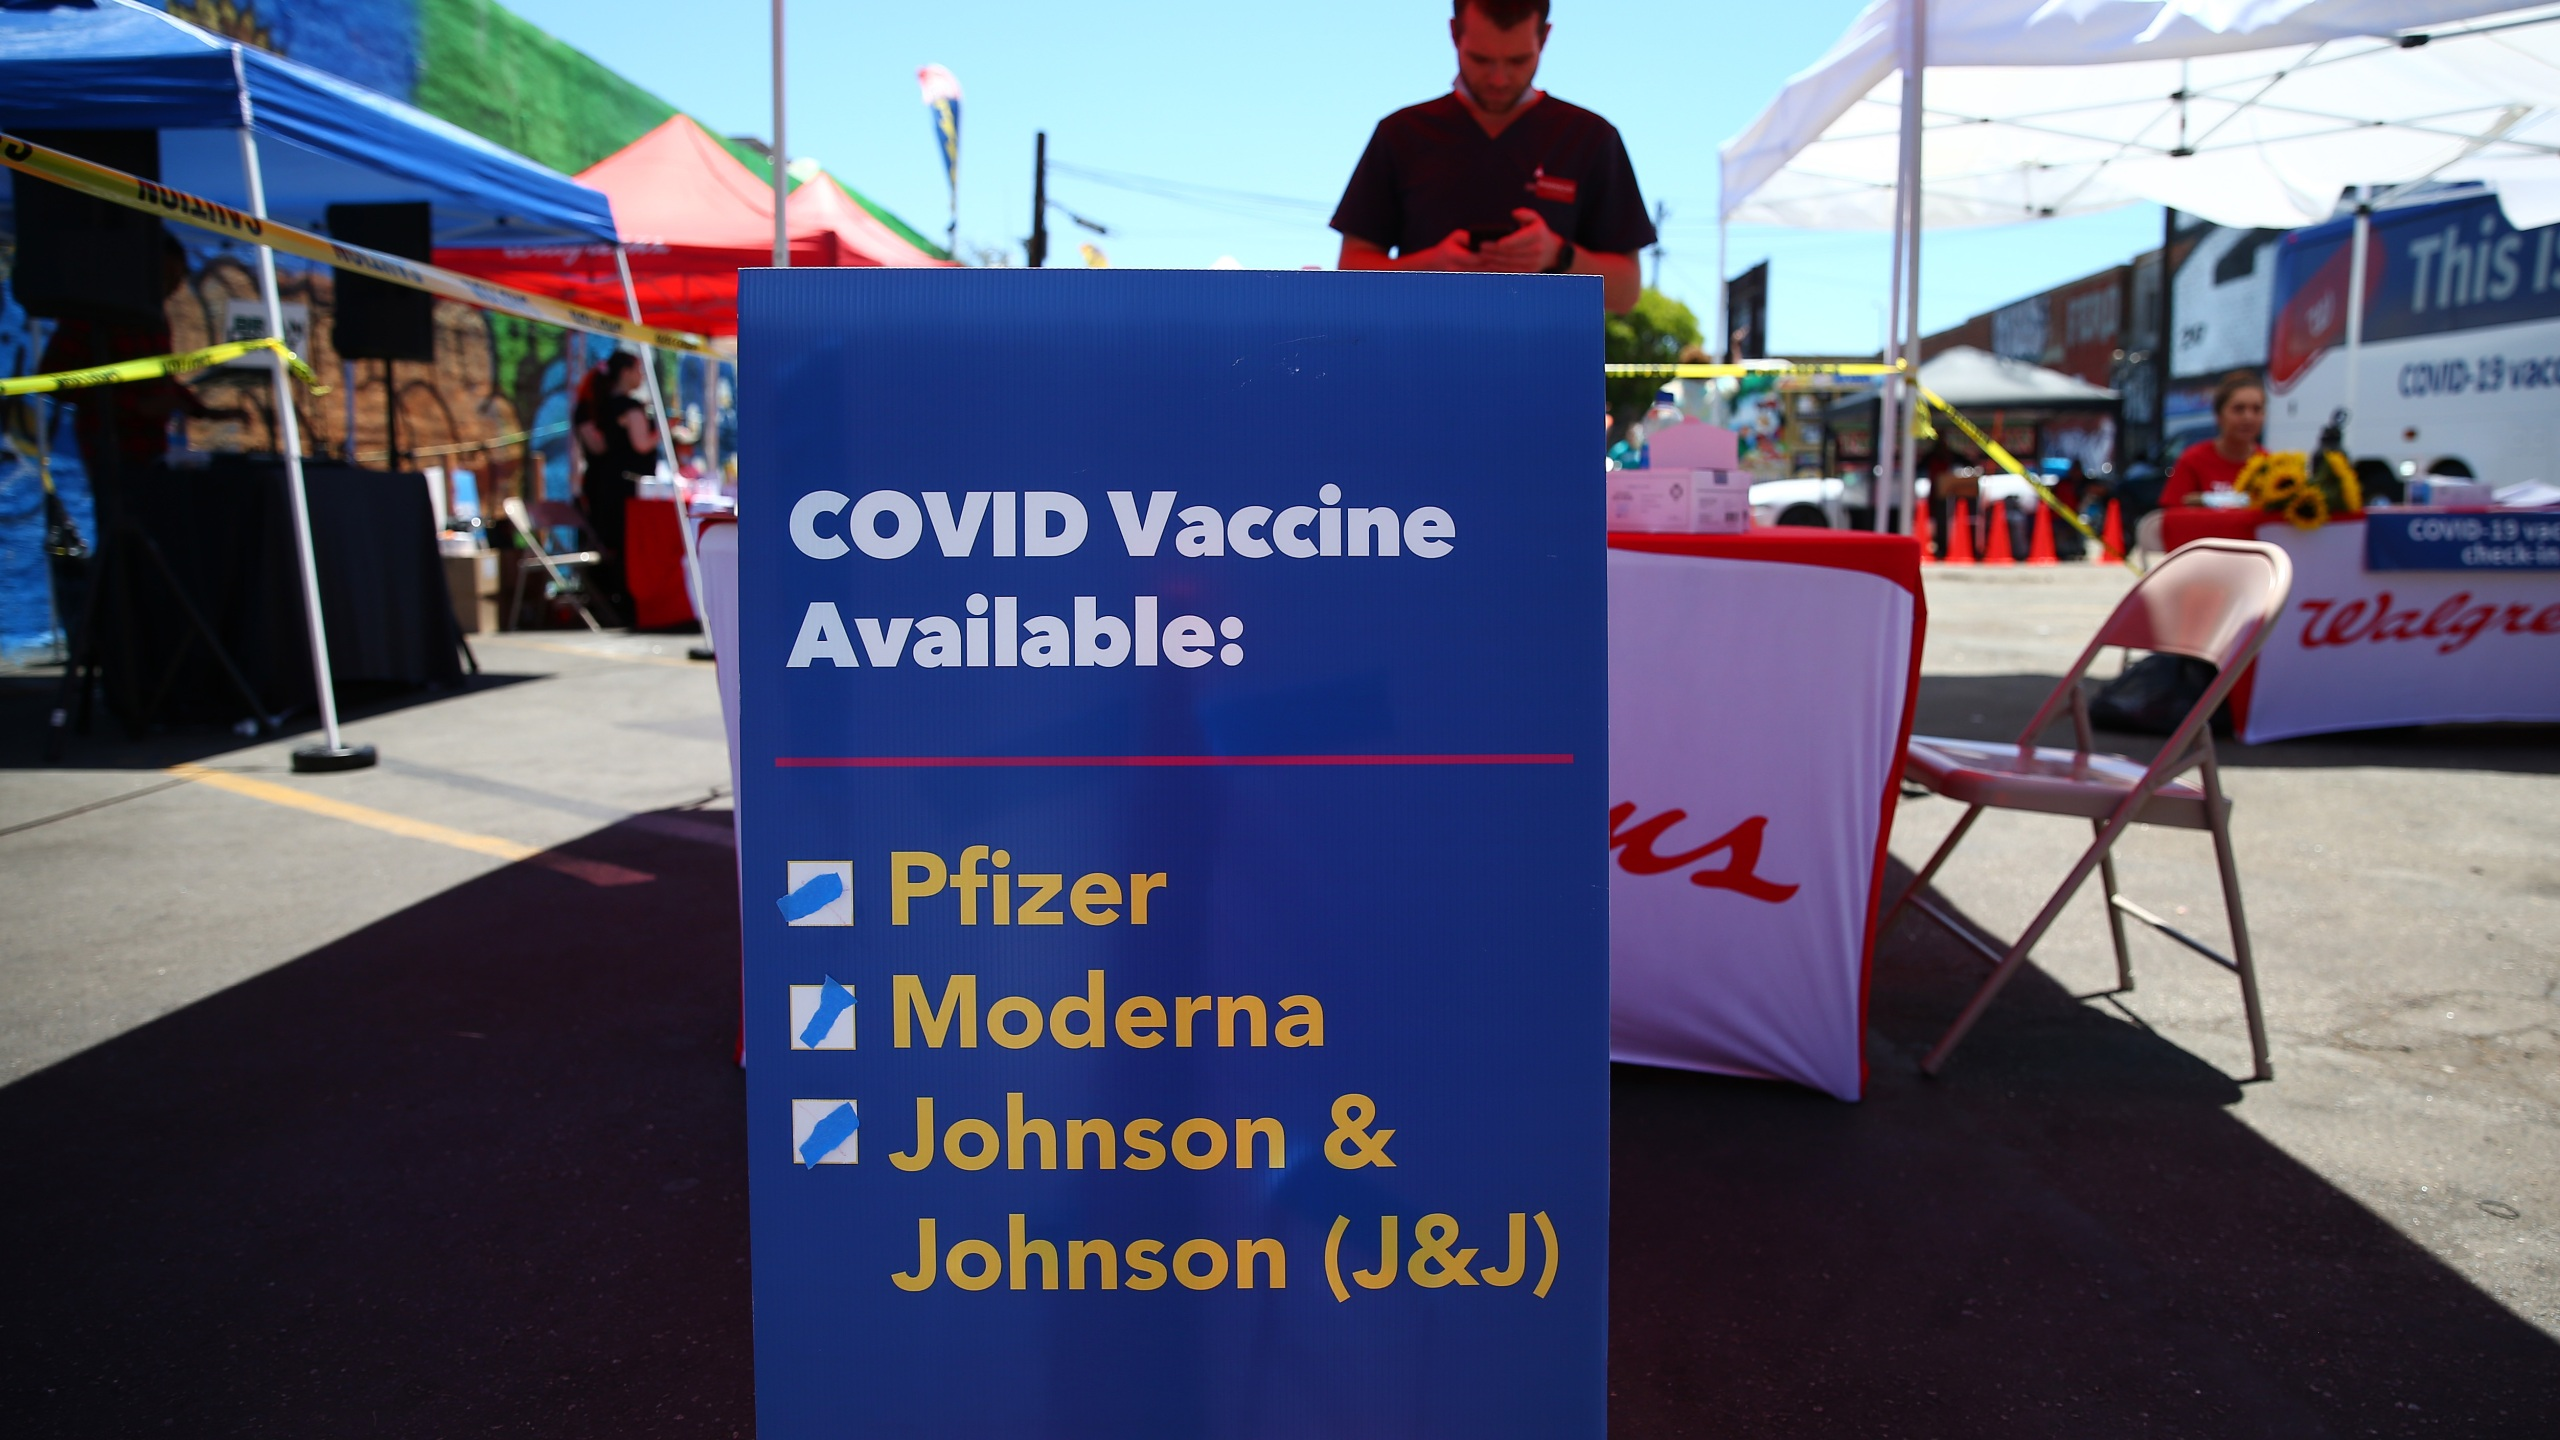 A sign displays the types of COVID-19 vaccination doses available at a Walgreens mobile bus clinic on June 25, 2021 in Los Angeles. (Mario Tama/Getty Images)